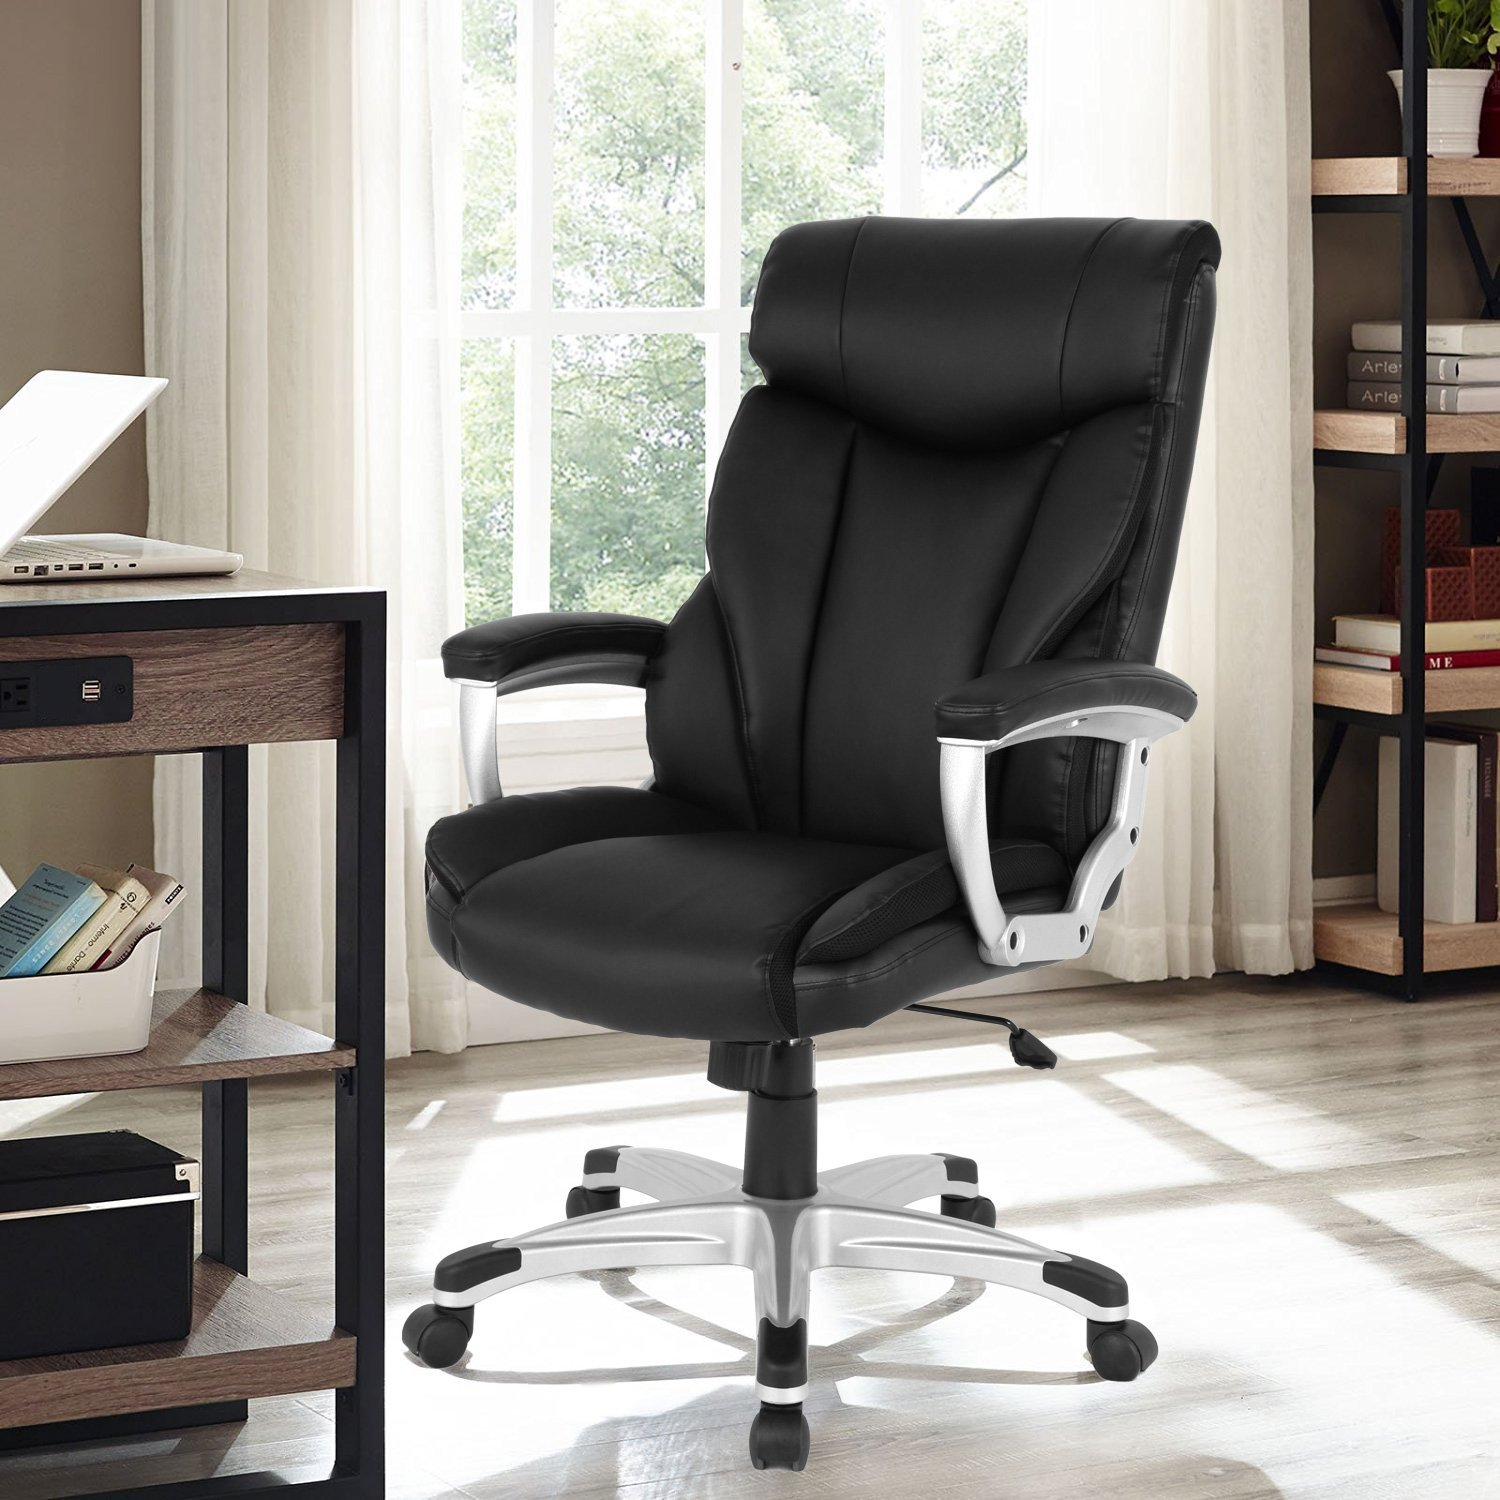 Thehut Home Office: Best Home Office Chair Under $200 For 2019-2020